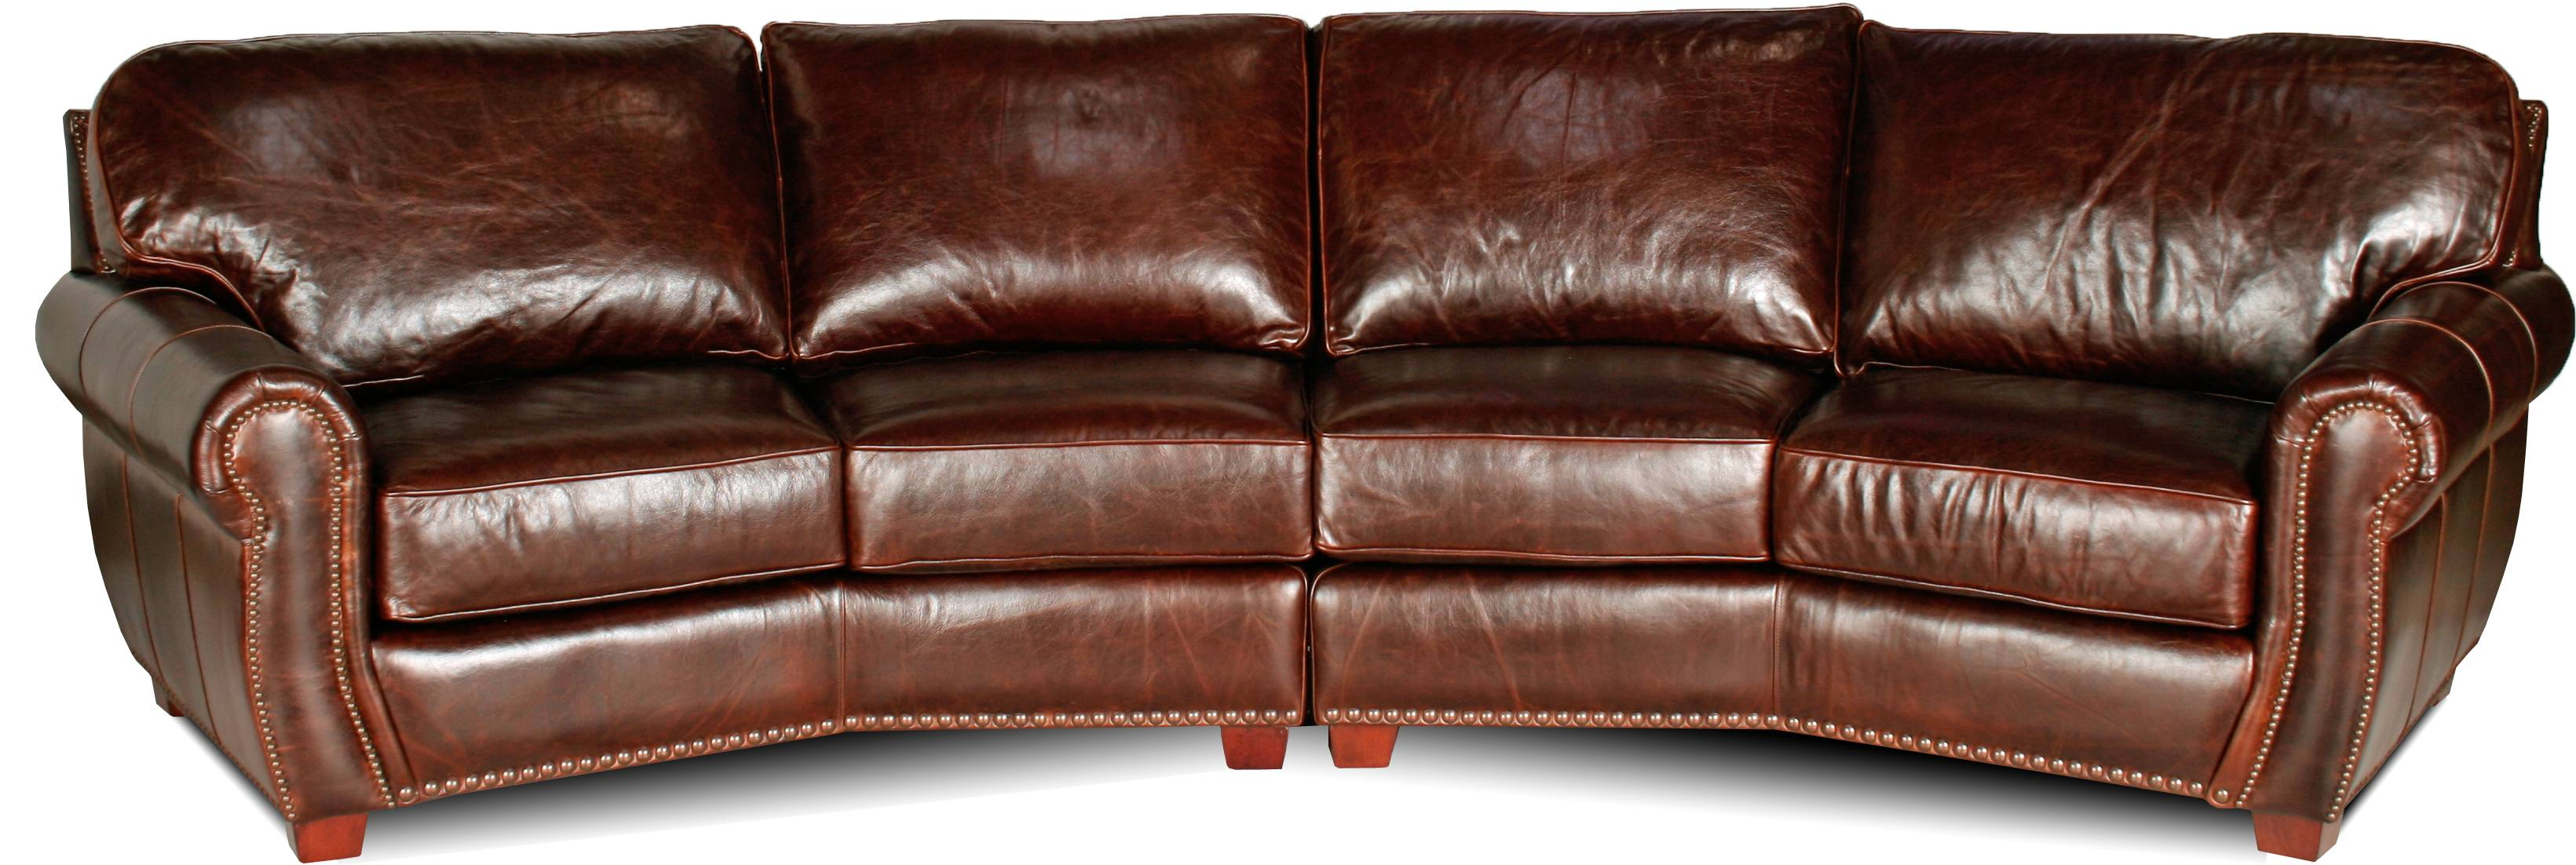 Berkshire leather furniture for Furniture leather sofa